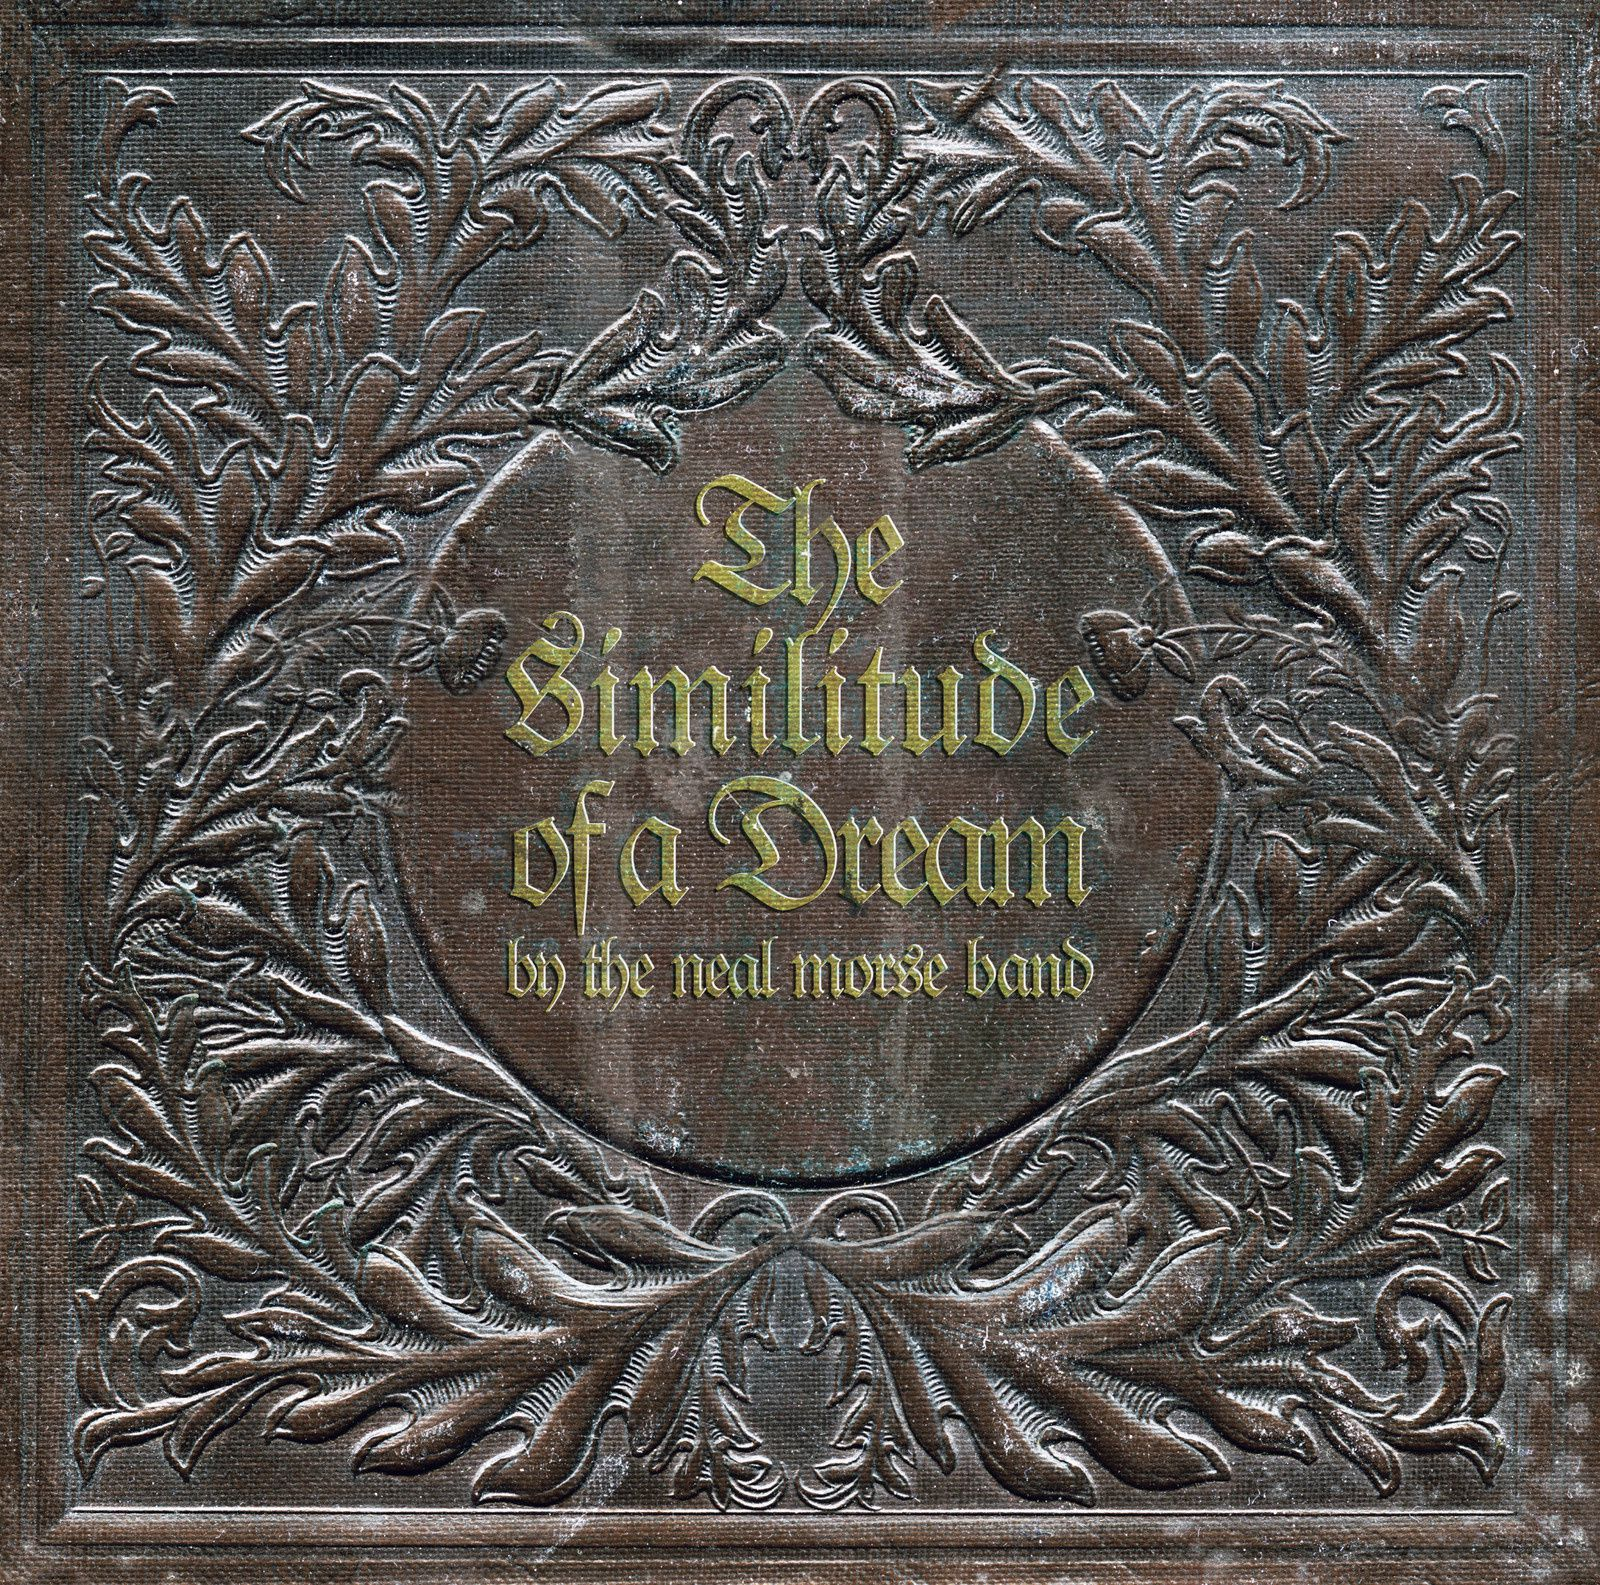 New THE NEAL MORSE BAND album in autumn